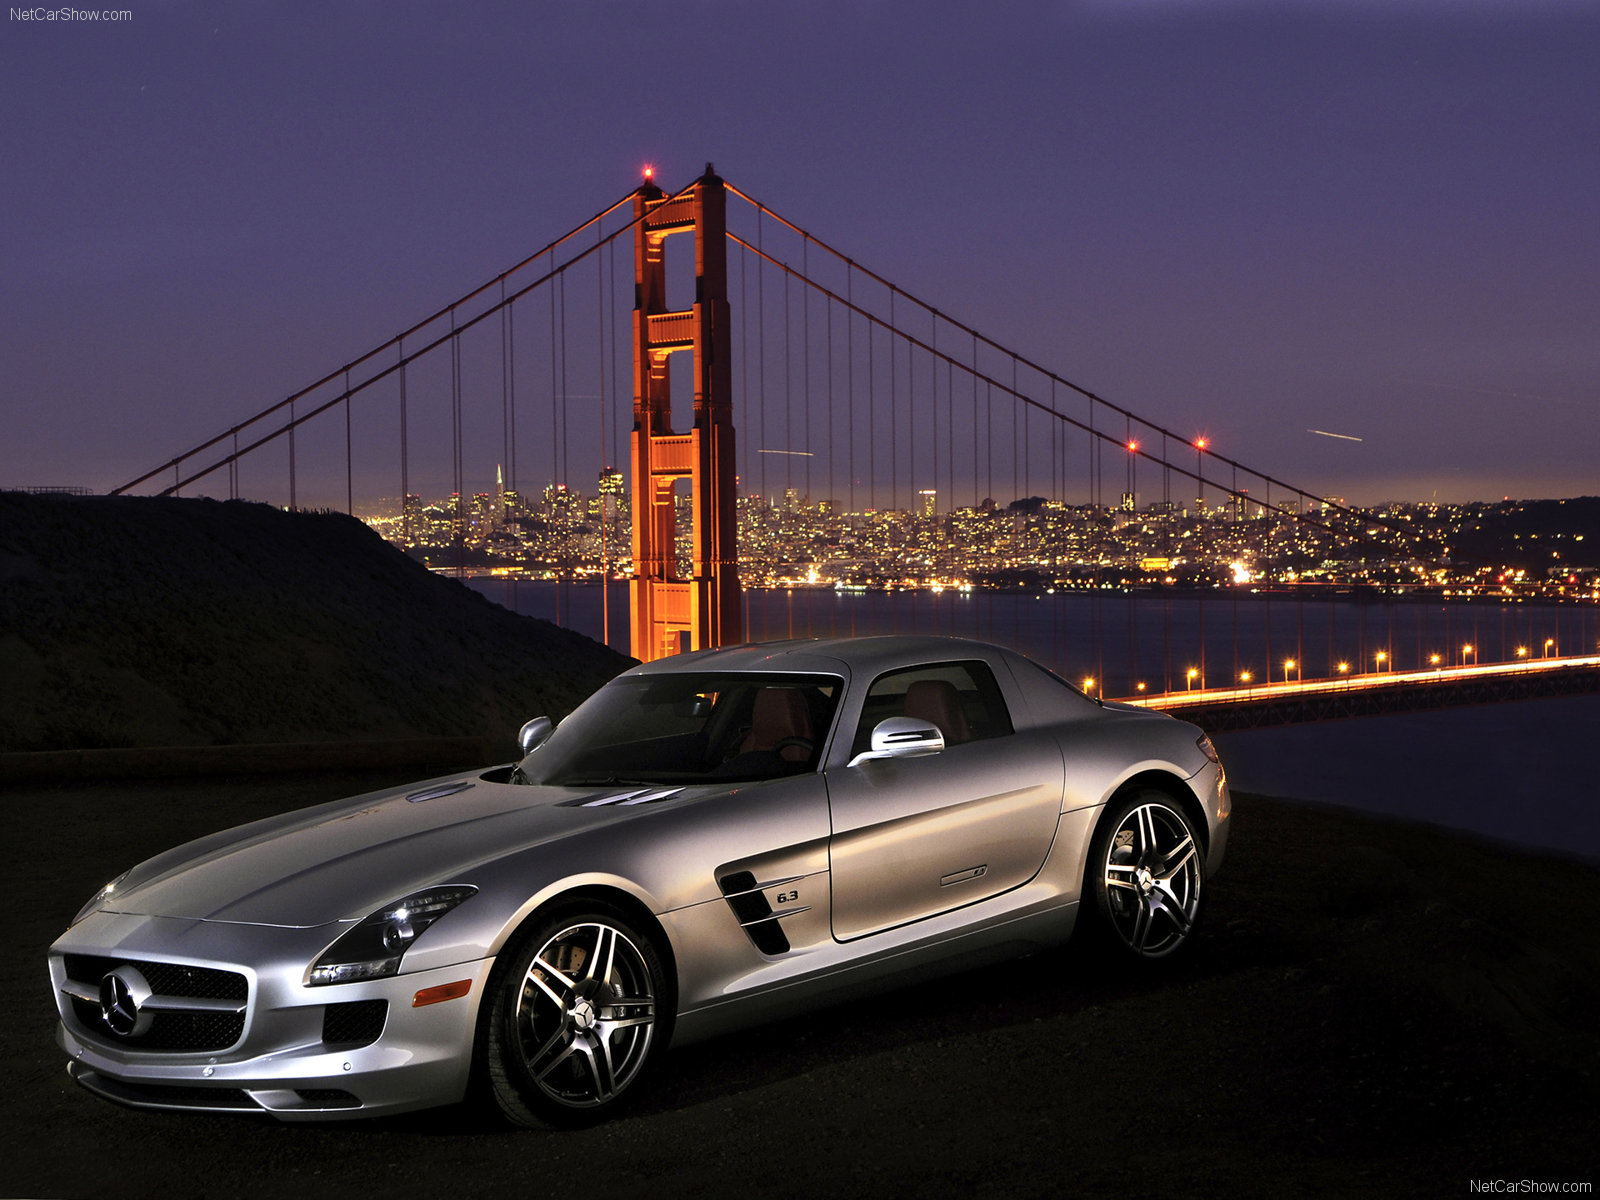 You can vote for this Mercedes-Benz SLS AMG photo